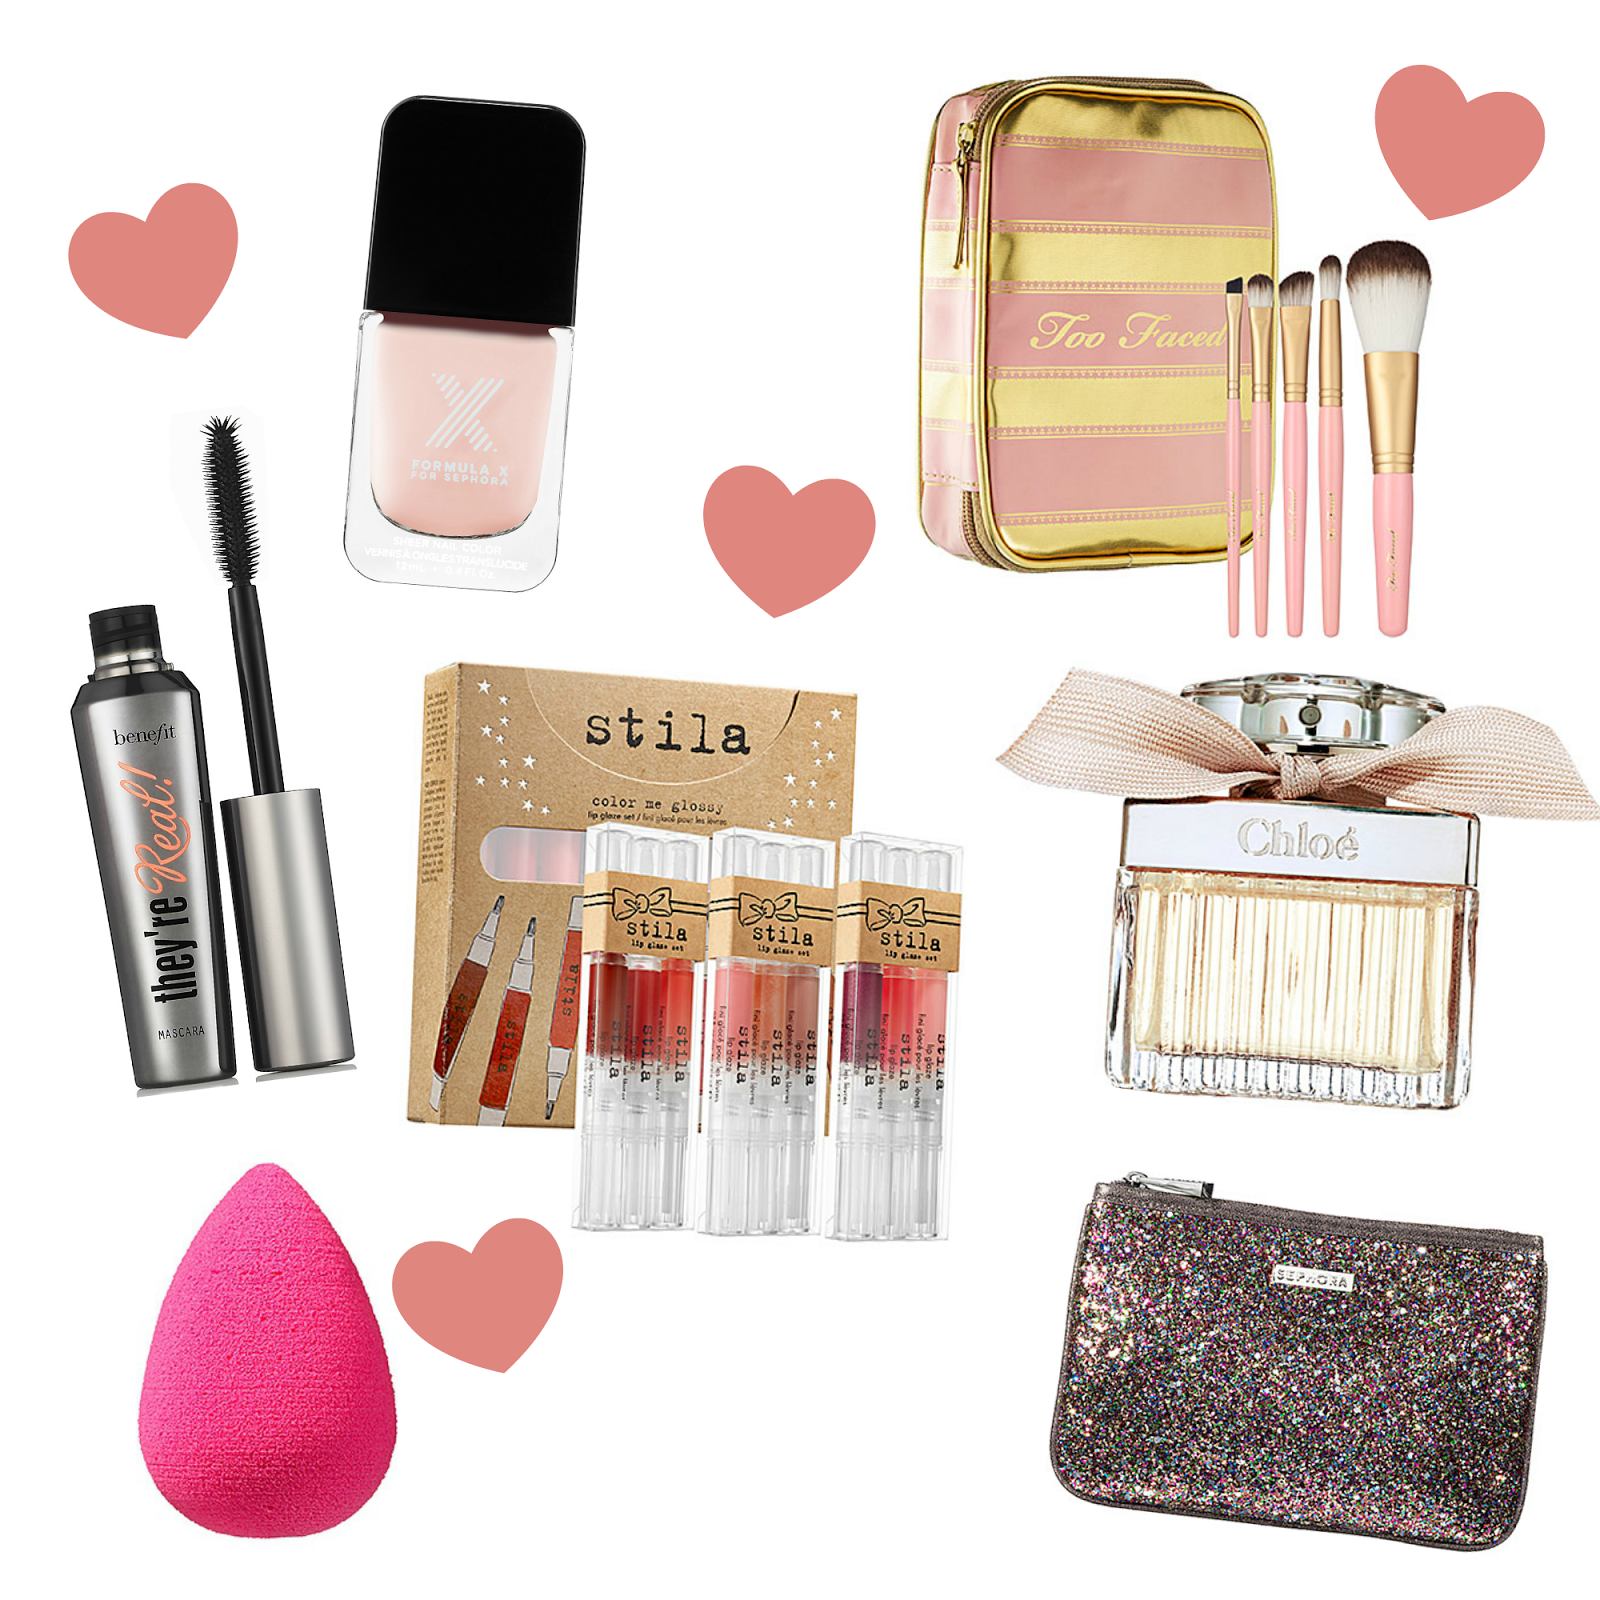 cantliveitdown: What to get your girlfriend for Christmas ♡